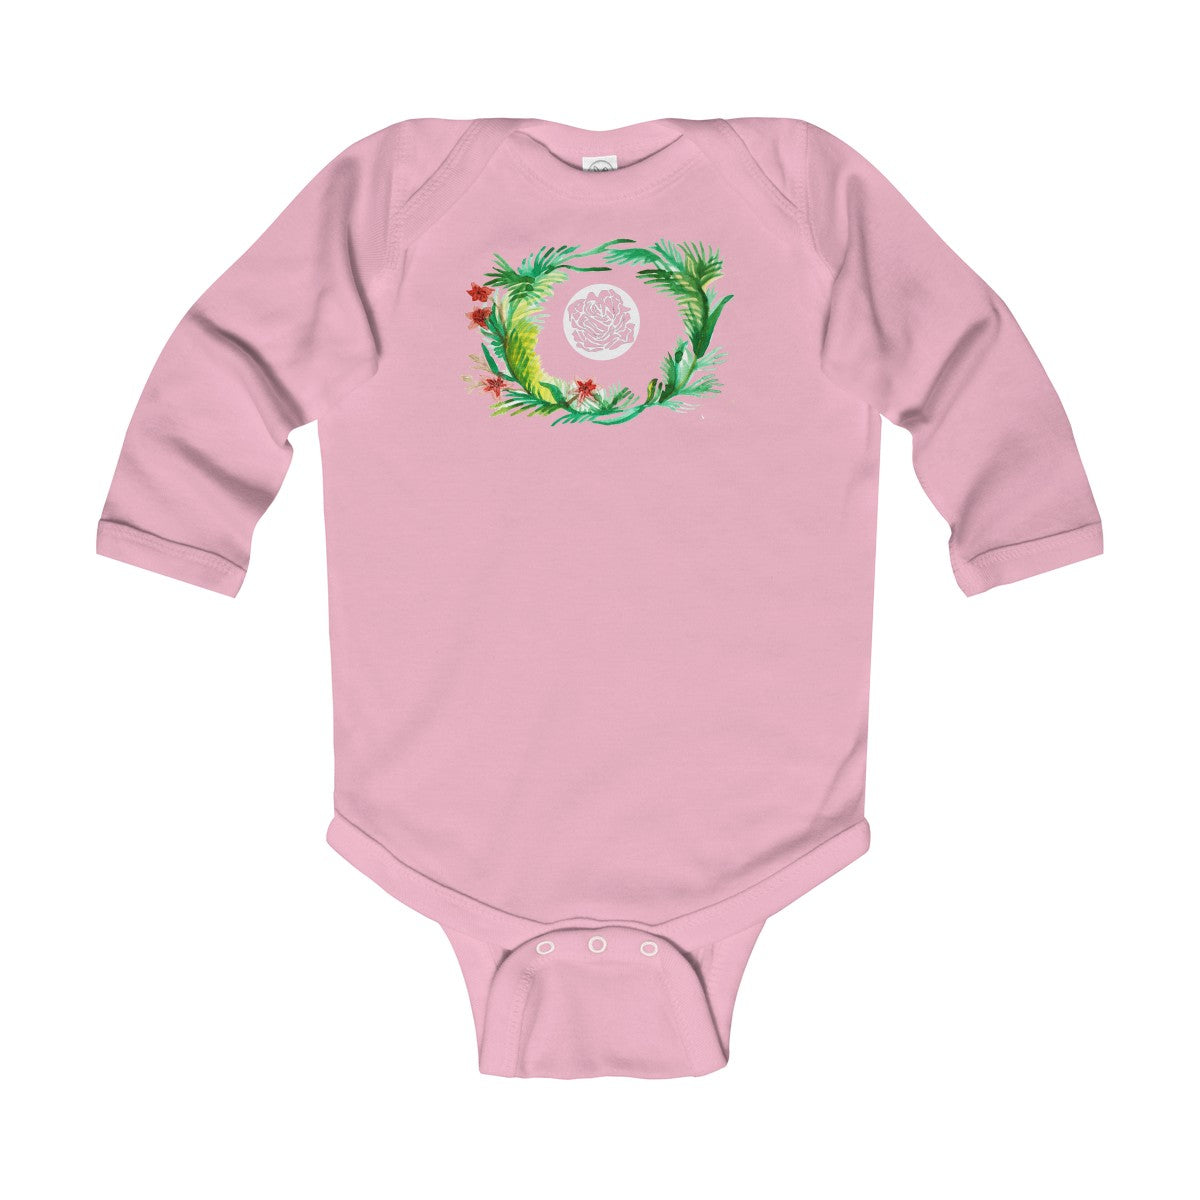 Fall Floral Print Baby's Infant Cotton Long Sleeve Bodysuit -Made in UK (UK Size: 6M-24M)-Kids clothes-Pink-18M-Heidi Kimura Art LLC